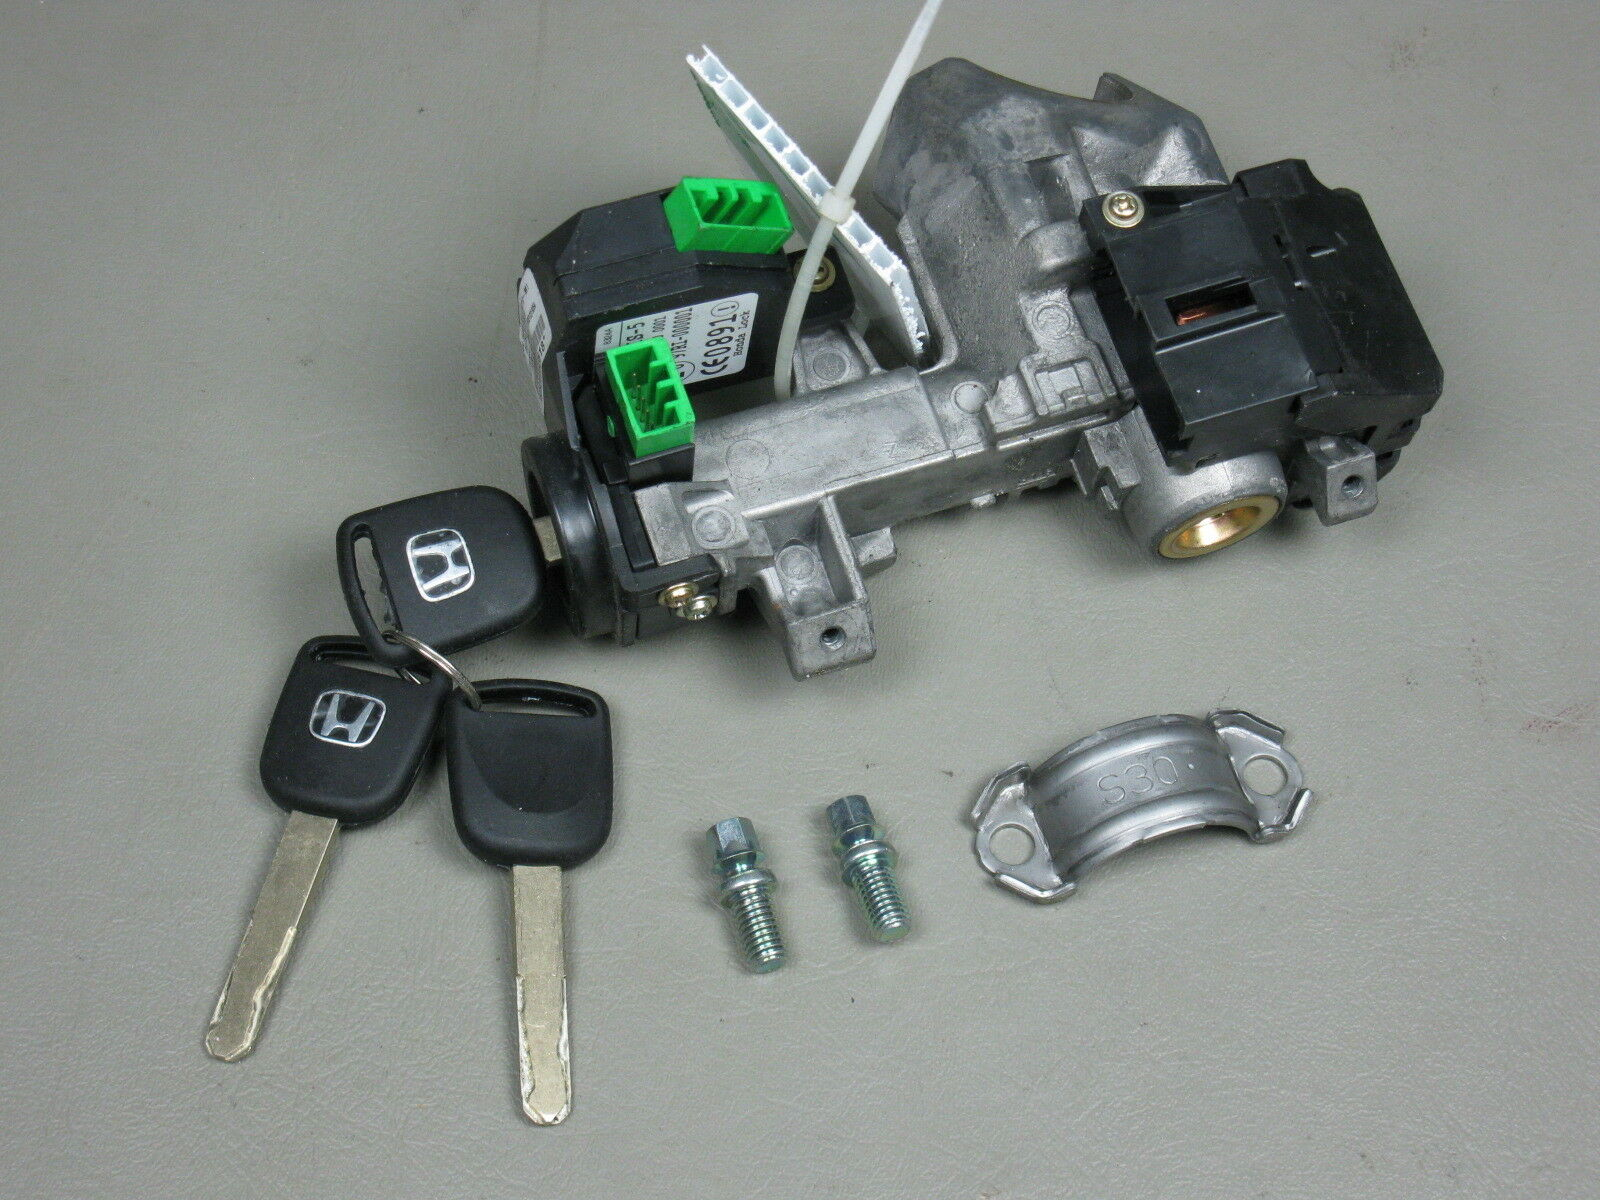 03 04 05 Honda Civic OEM Ignition Switch Cylinder Lock Manual Trans with 3  KEYs 1 of 2Only 3 available See More